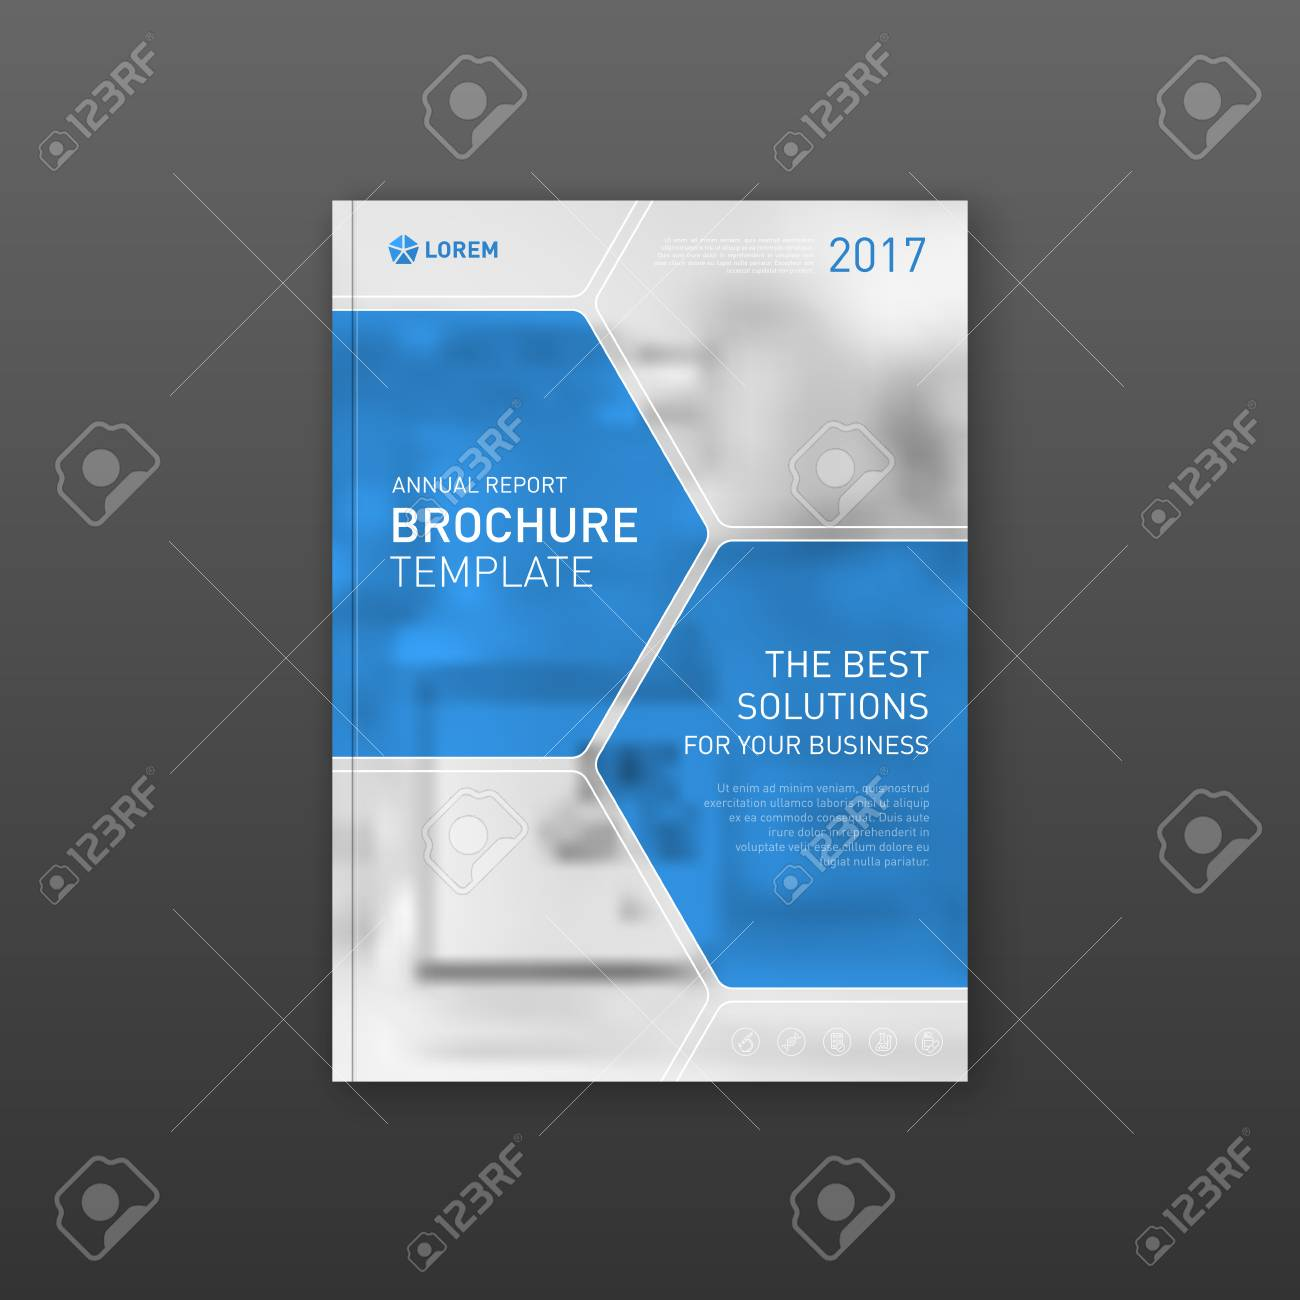 medical brochure cover template flyer design layout applicable